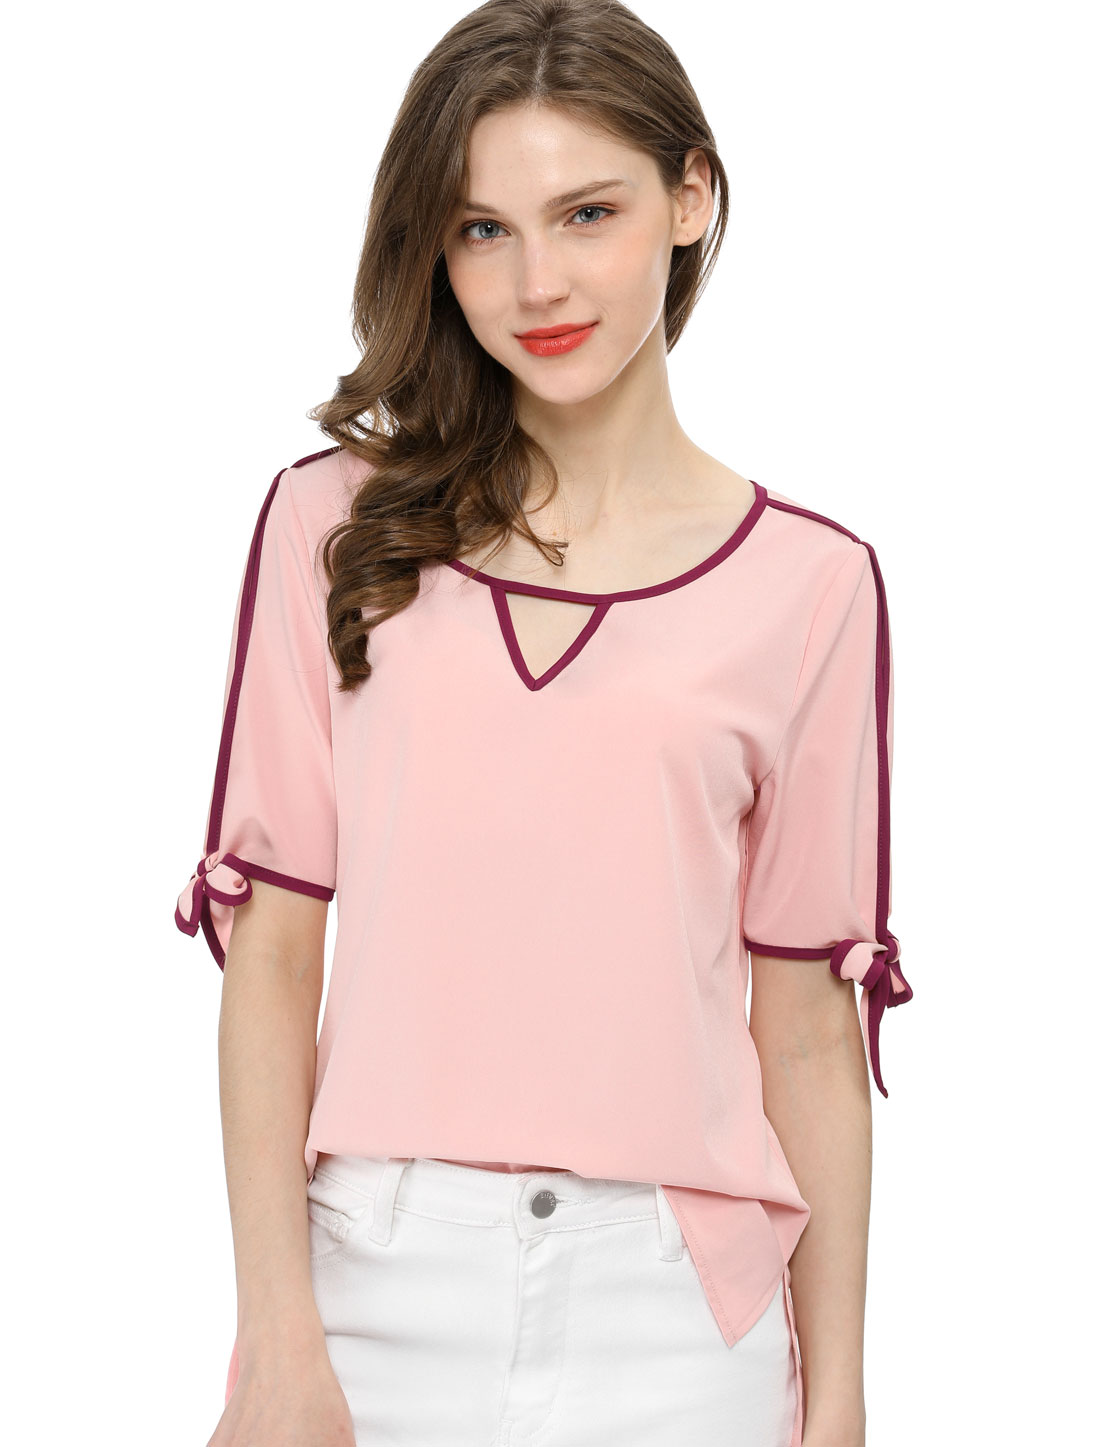 Allegra K Women V Cut-out Front Contrast Bow Tie Cuffs Top Pink L